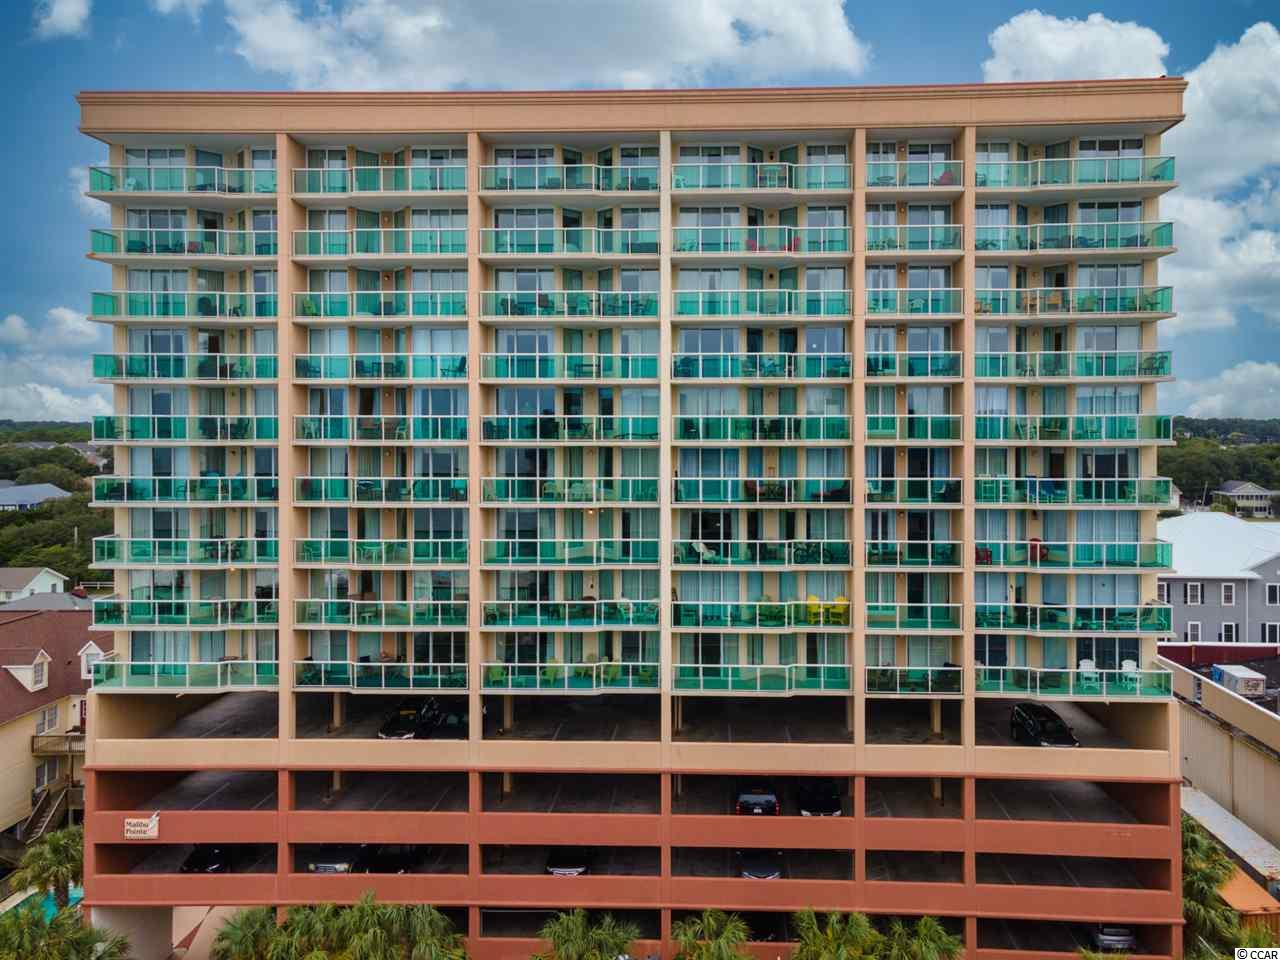 Now's your chance!  One of the largest, furnished one-bedroom units you can find in North Myrtle Beach in the highly desirable Malibu Pointe is now available!  Featuring tile floors, granite kitchen countertops and tile backsplash, this one should get your attention! Could this be your first beach property?  Maybe it's the perfect weekend getaway condo!  Isn't it time to consider a rental property?  This cheery coastal cutie could be all that and more!  Full of amenities, you can stay busy all day with an exercise room, indoor pool, lazy river, hot tub and game room.  Take a few steps across Ocean Drive and your toes are in the sand or maybe you'll try your hand at parasailing lessons!  Enjoy a bite and brew at the oceanfront Molly Darcy's Irish Pub but save room for a soft serve ice cream from Mr. G's!  It's all right outside your door! Square footage is approximate and not guaranteed. Buyers responsible for verification.